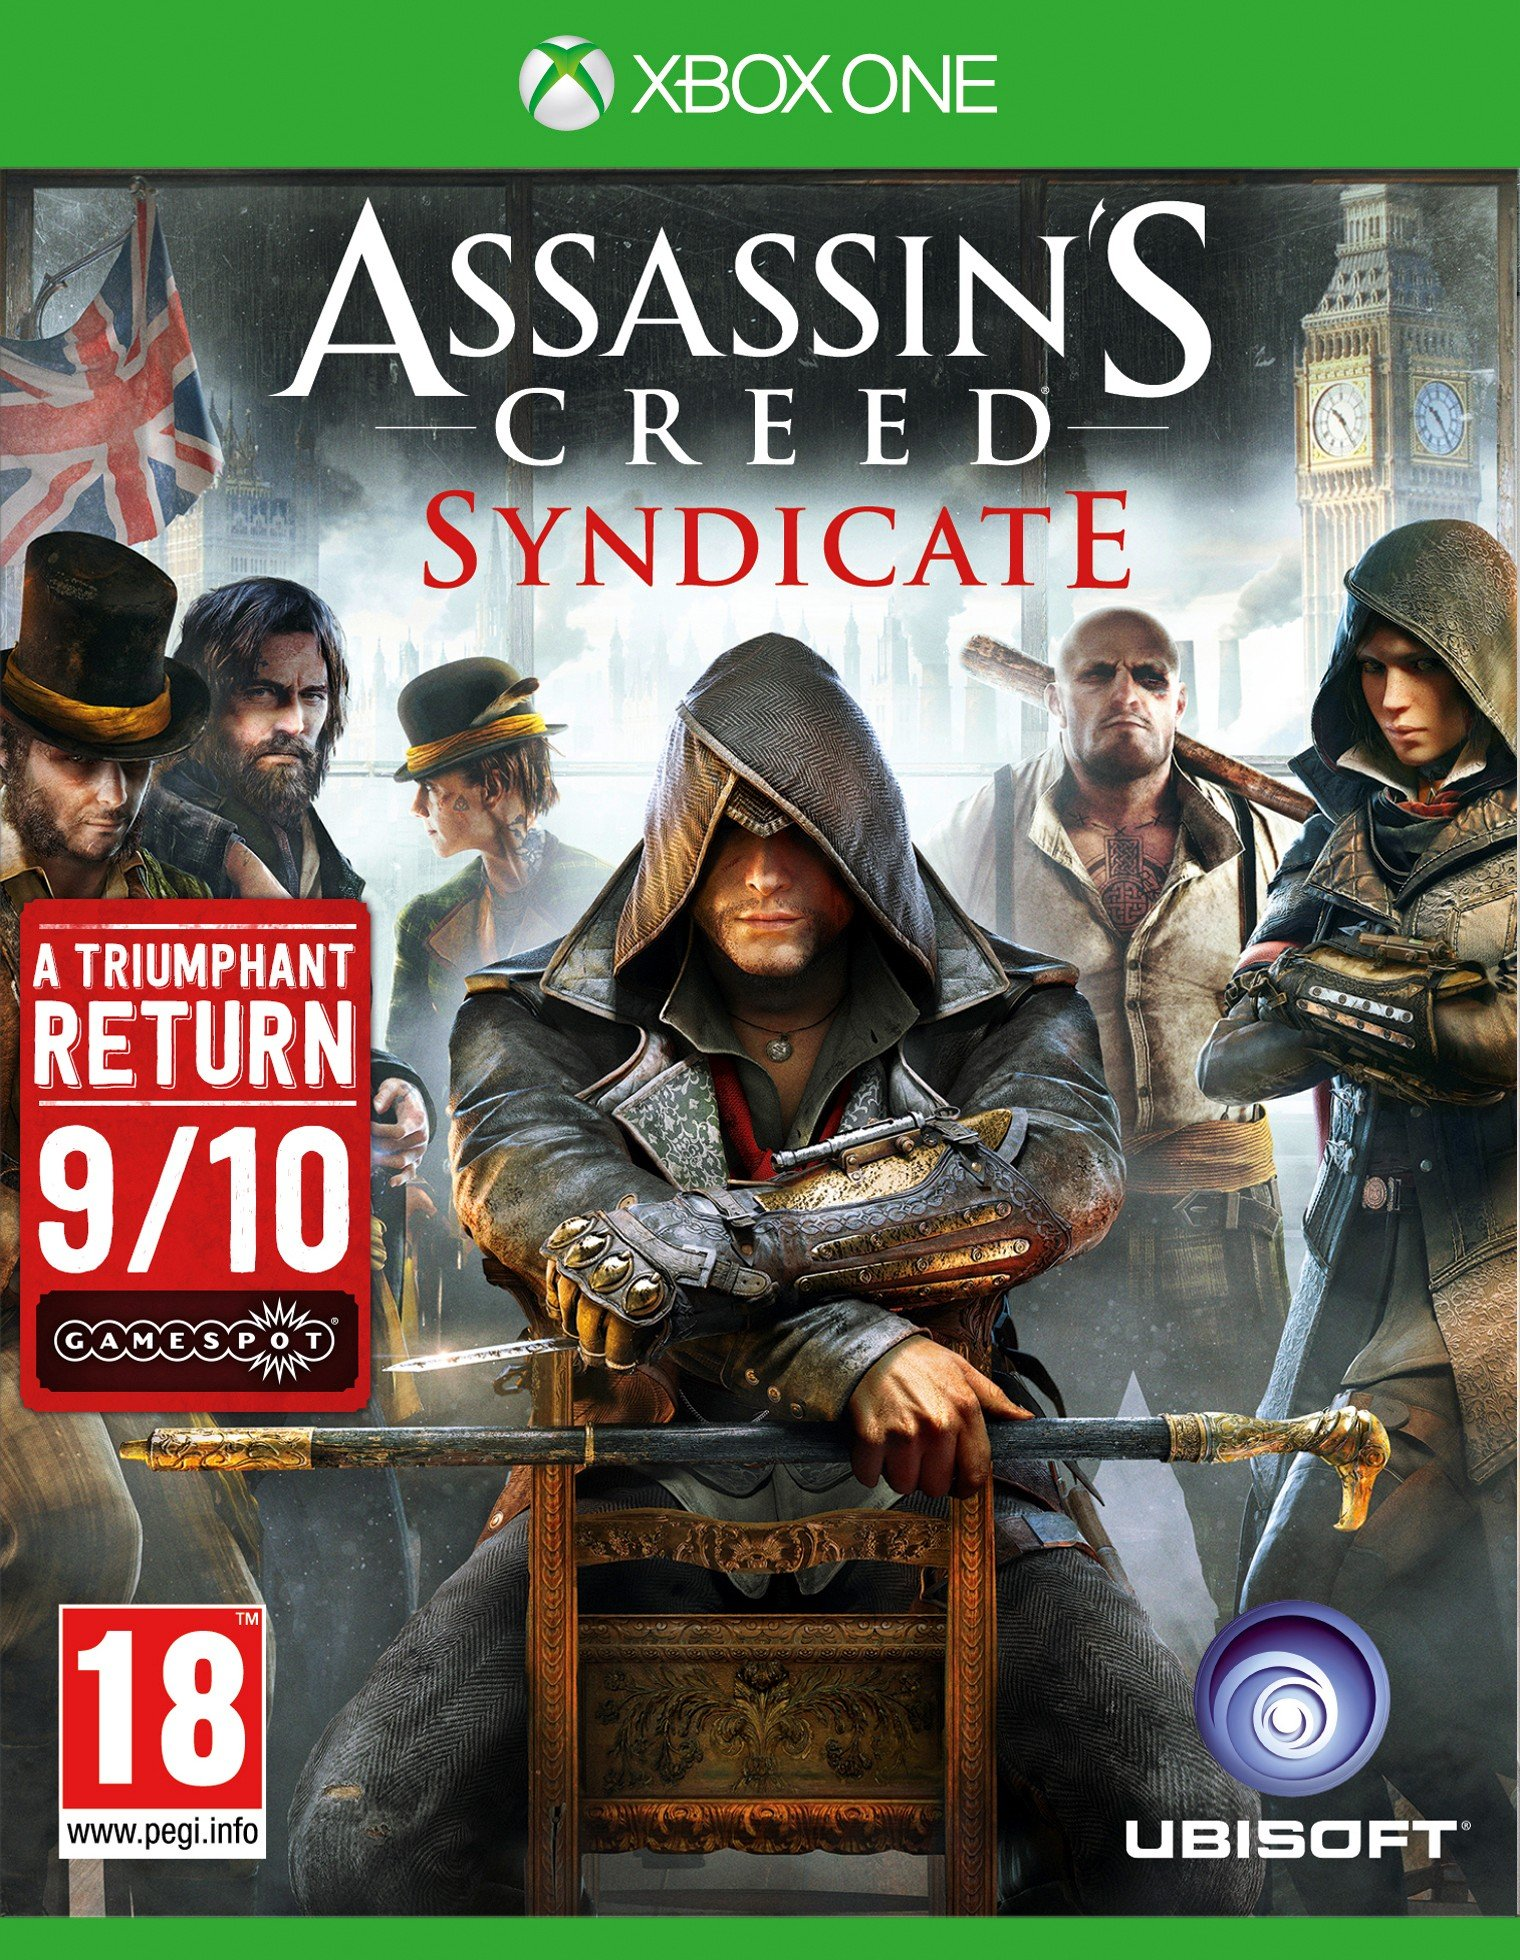 Assassin's Creed Syndicate (Xbox One) product image